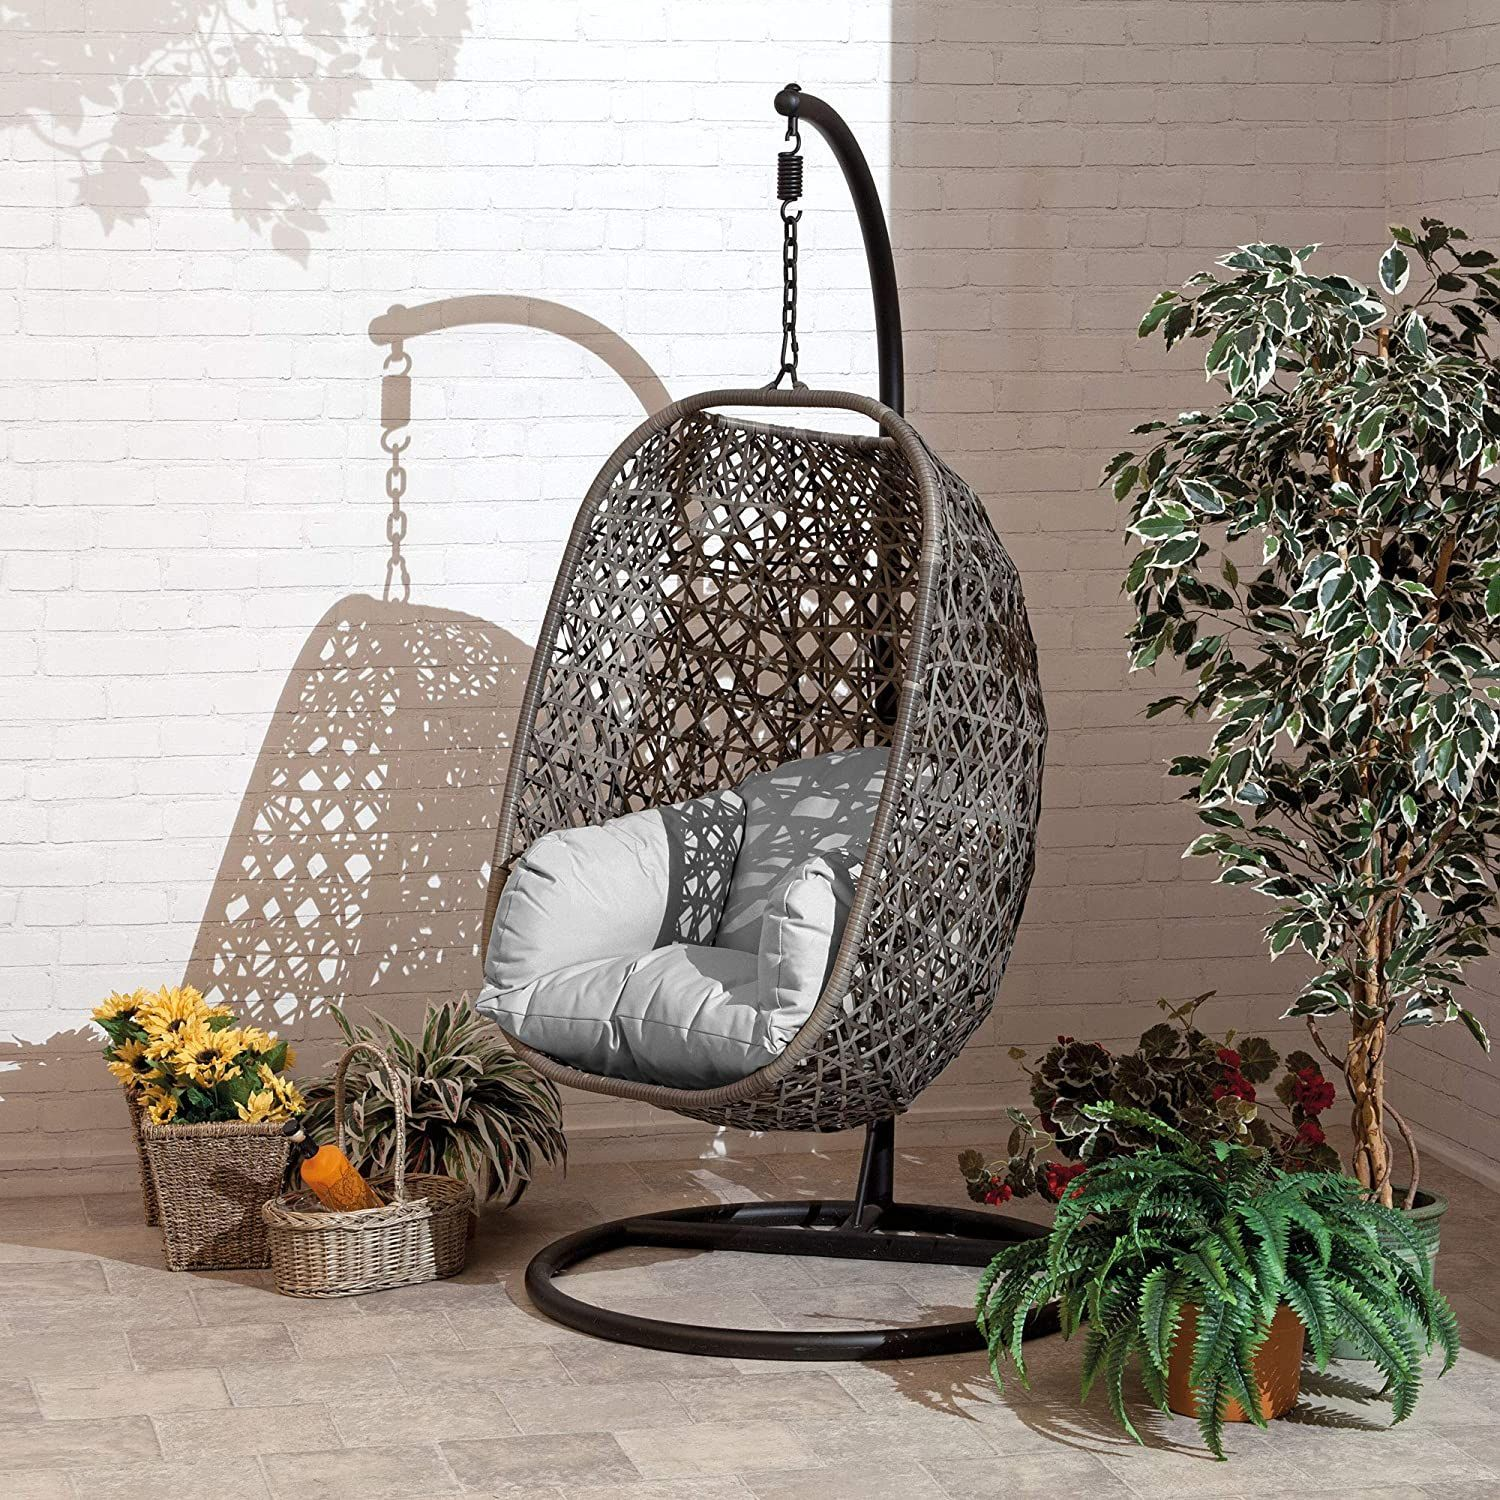 21 Hanging Egg Chairs To Garden, Hanging Egg Chair Outdoor Uk